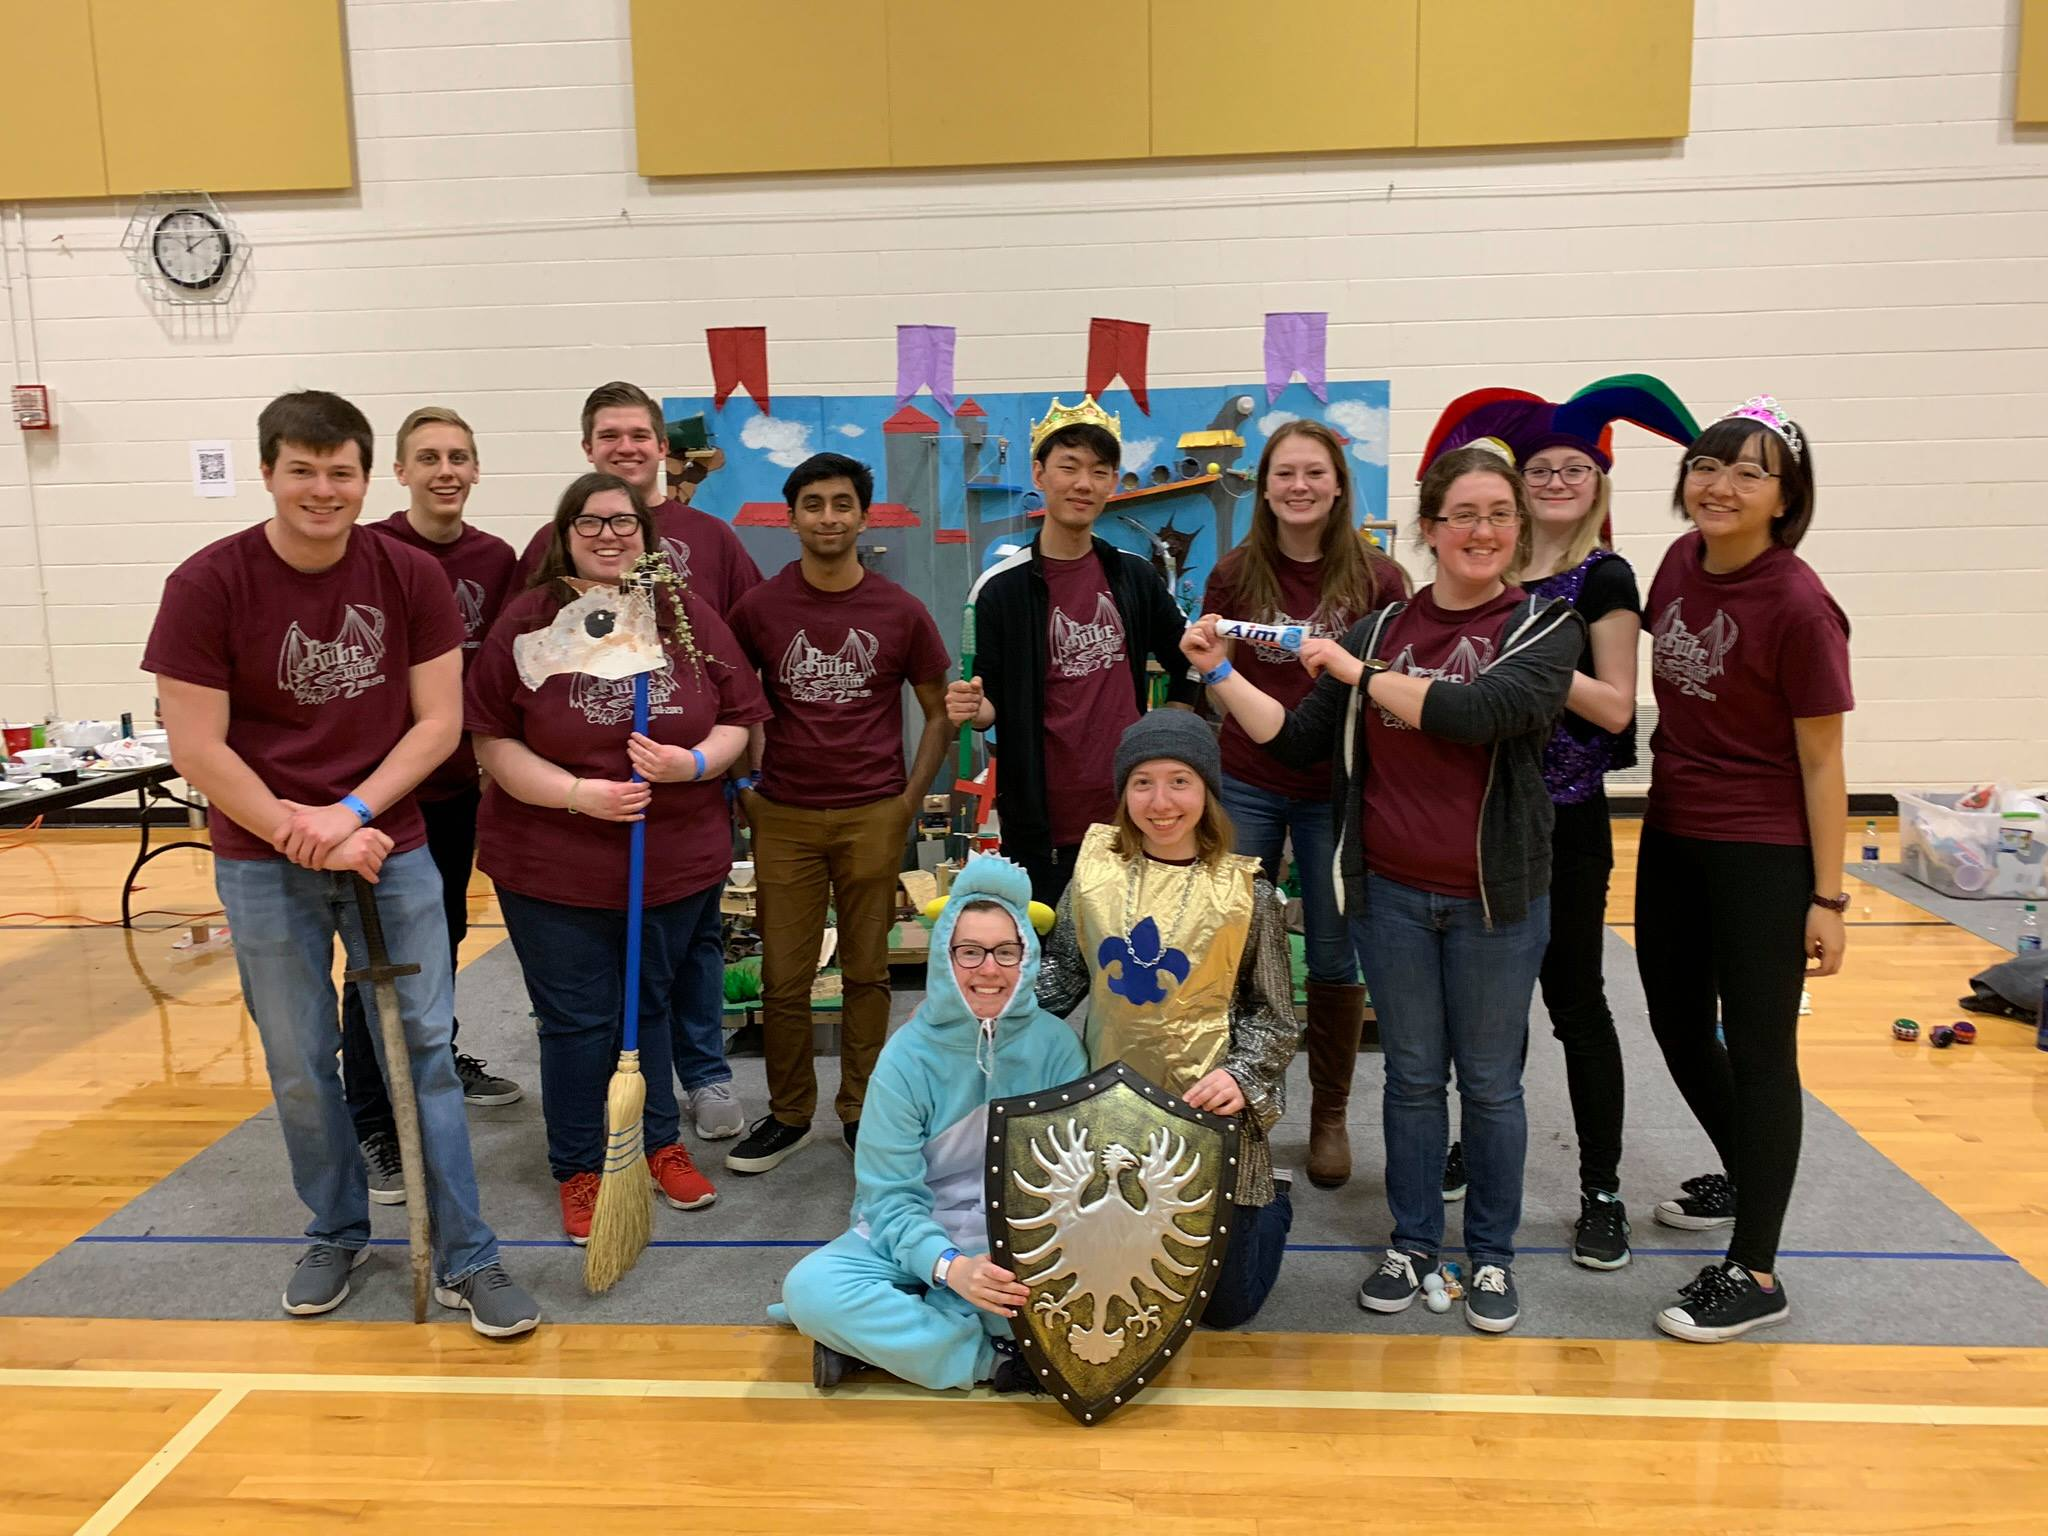 Rube Goldberg Society with their medieval-themed machine